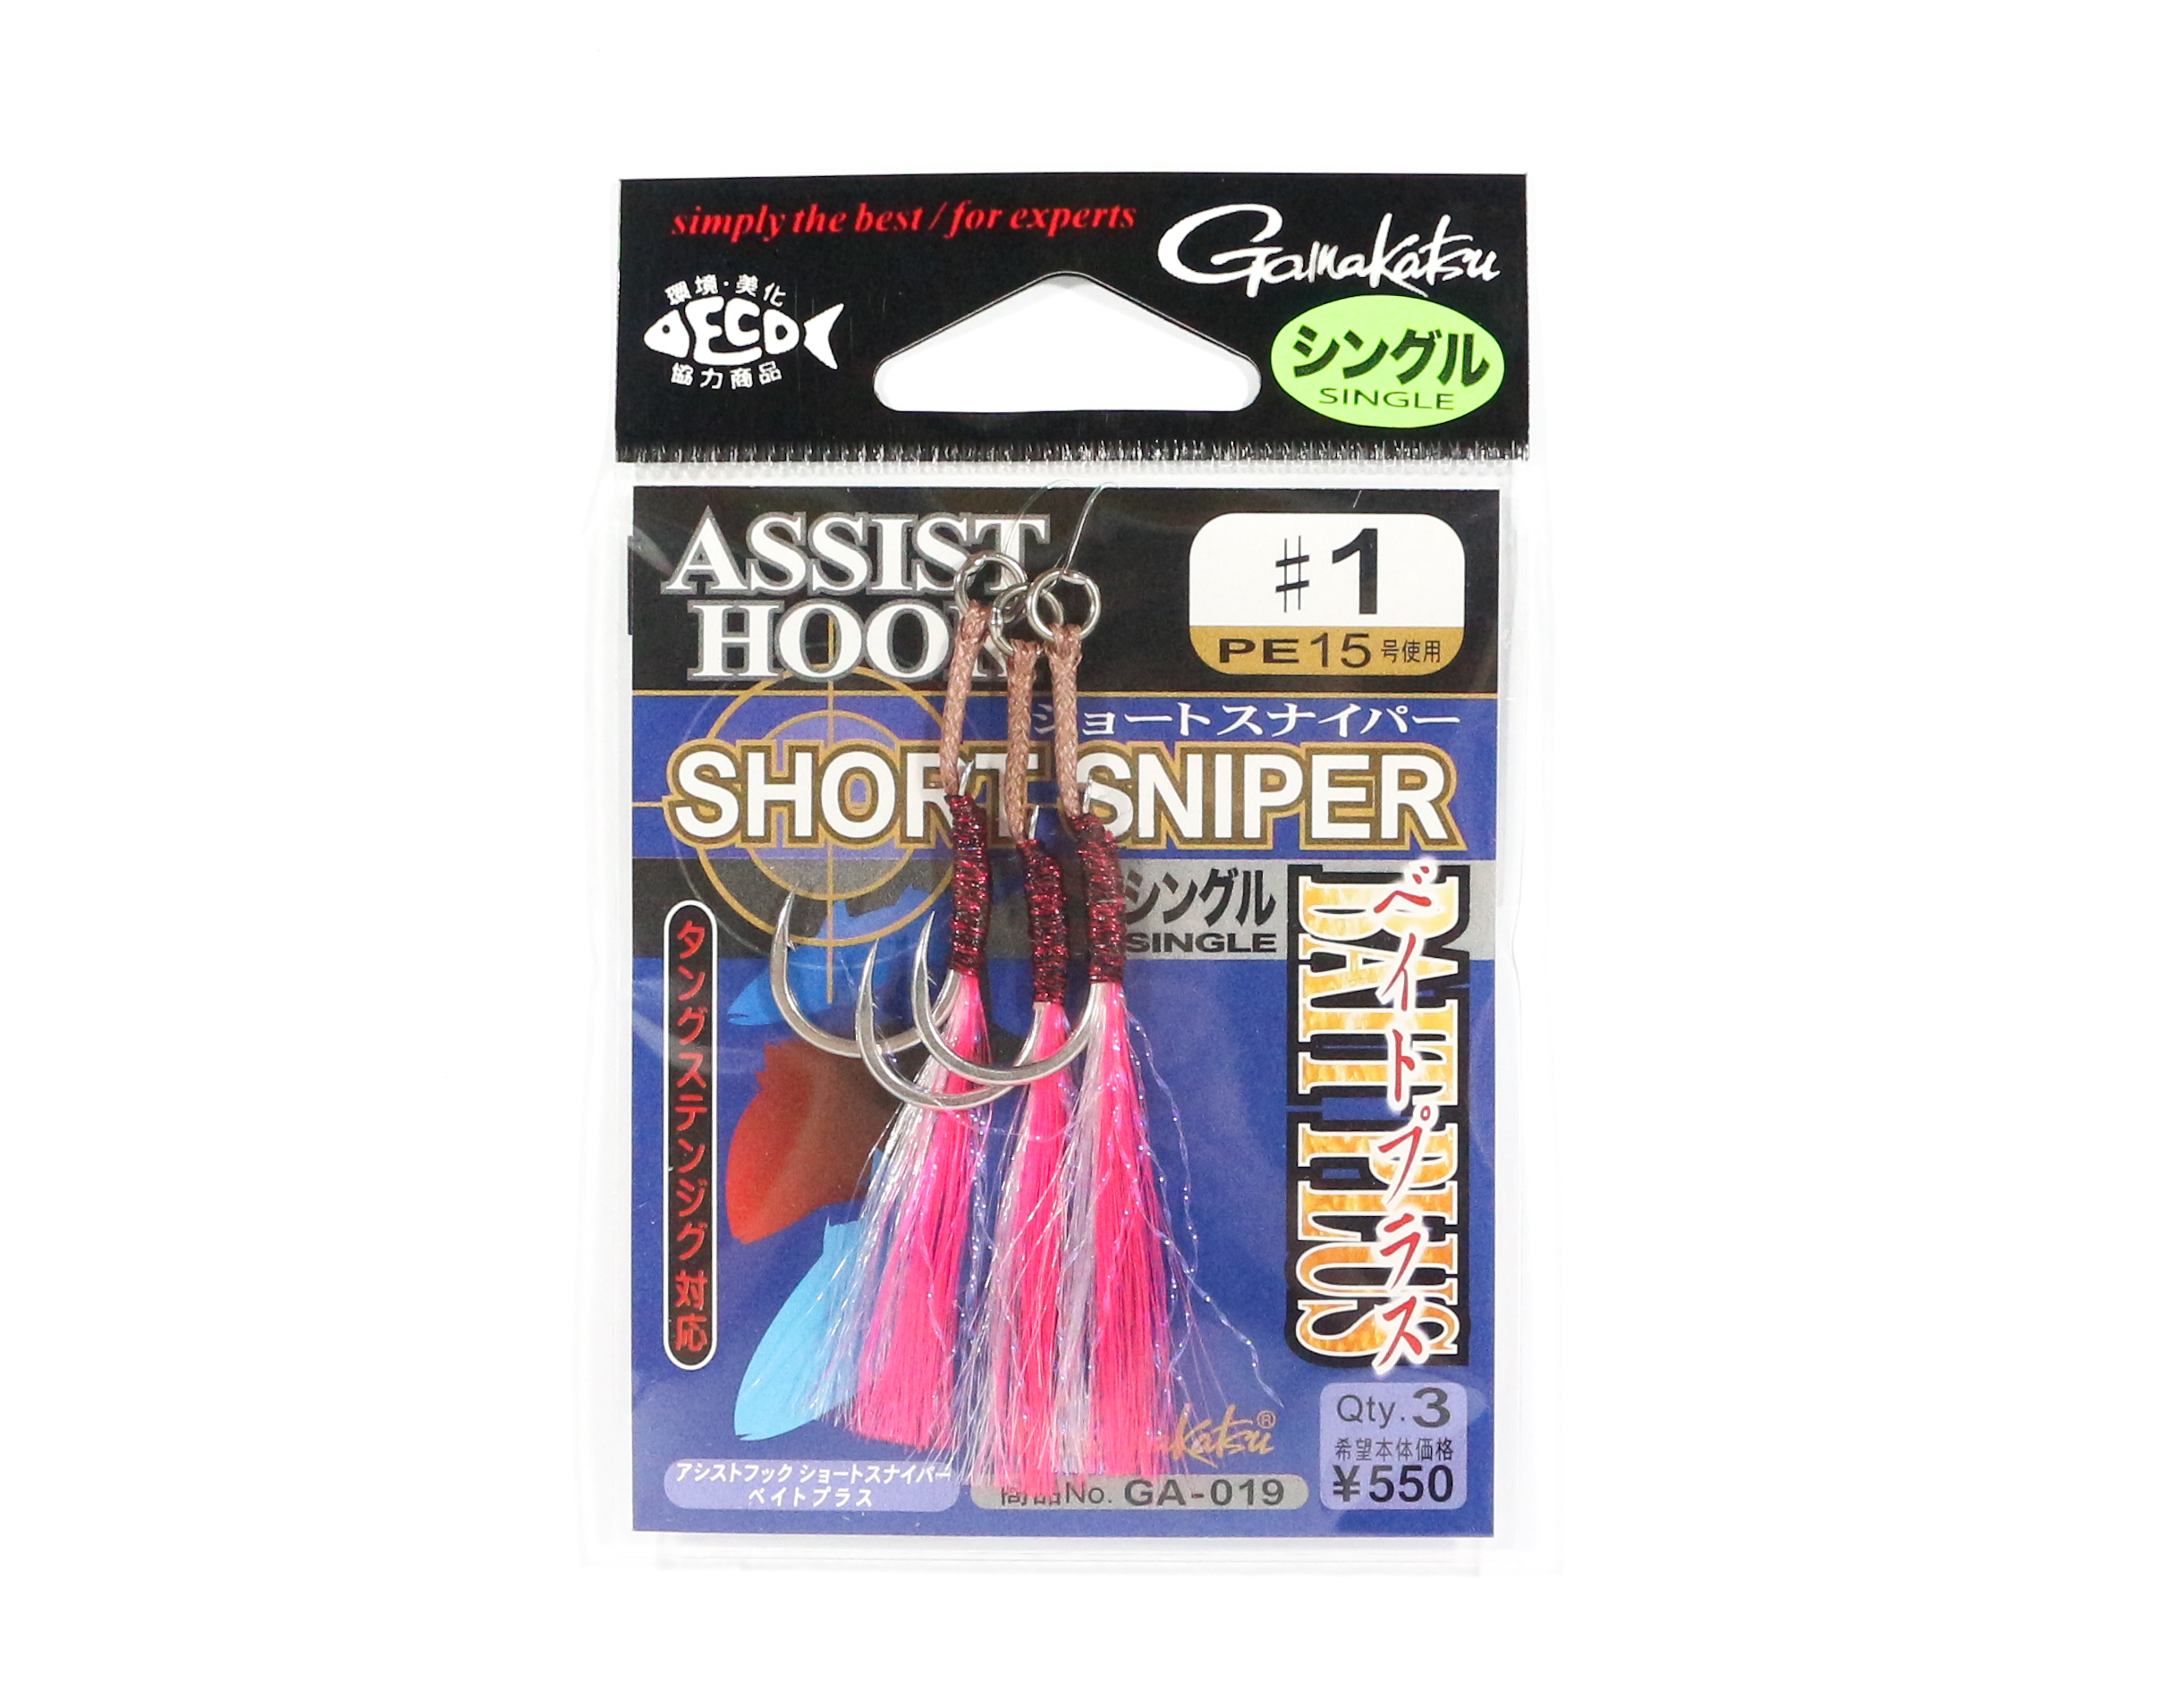 Gamakatsu GA-019 Assist Hook Short Sniper Single Size 1 ,3 Per pack (4148)